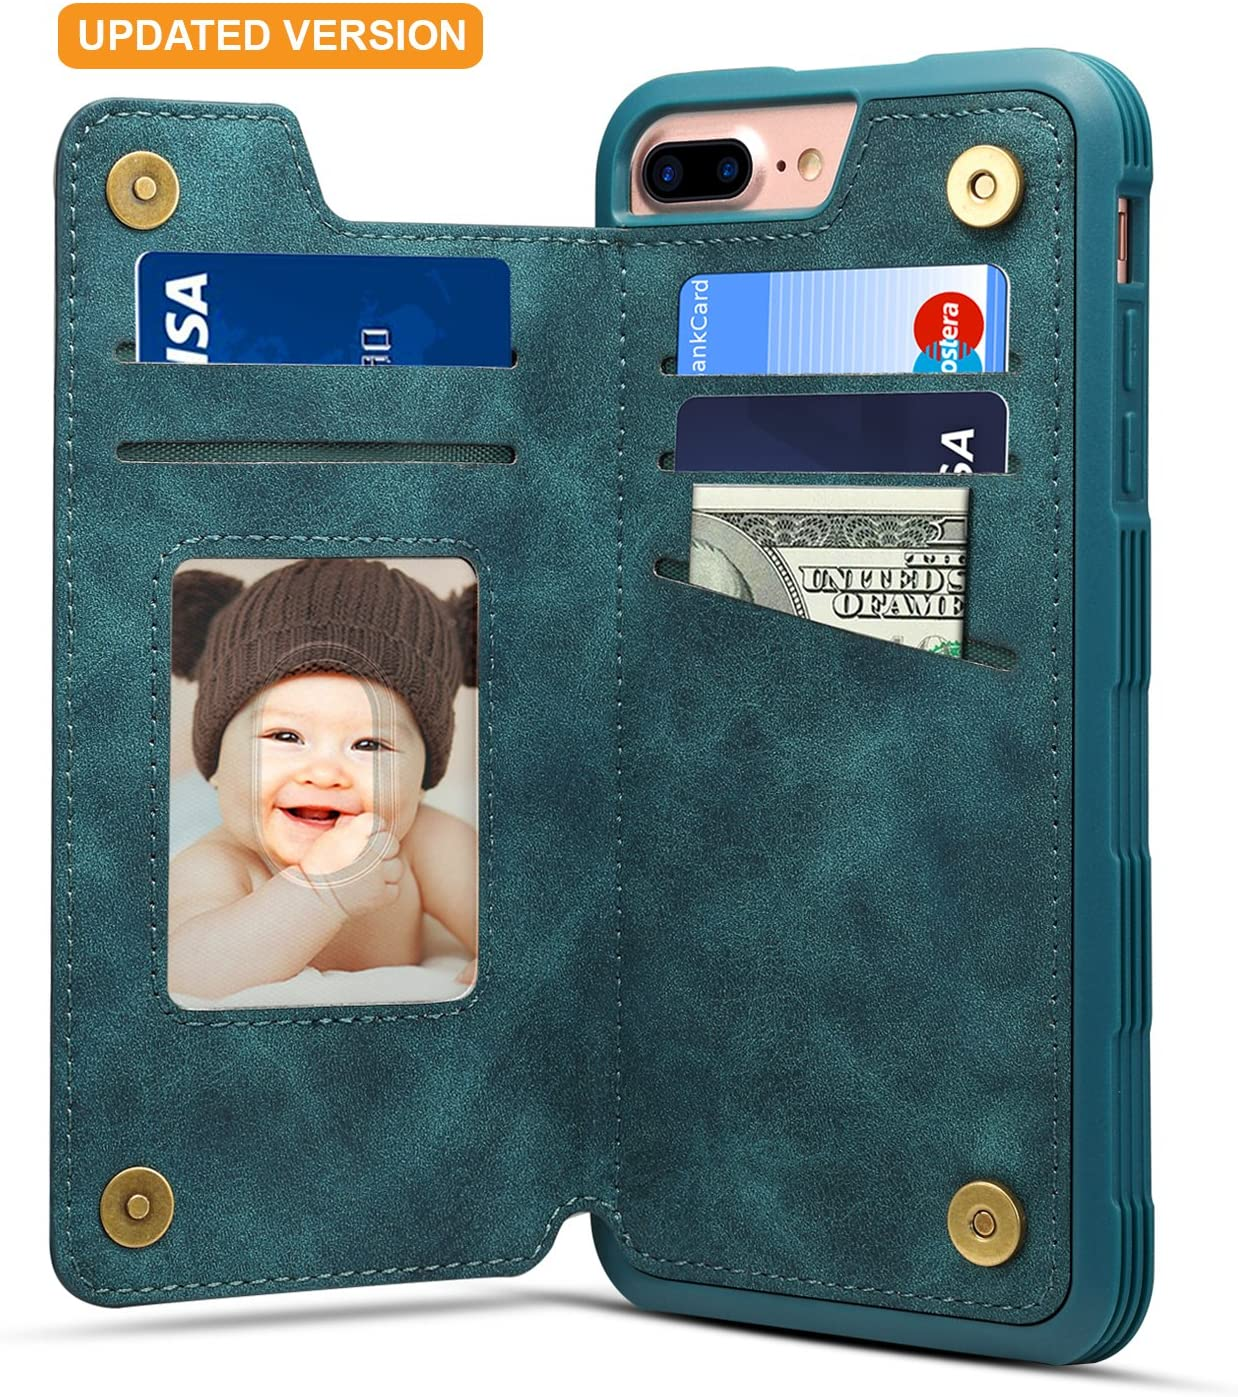 iPhone 8 Plus Card Holder Case iPhone 8 Plus Wallet Case Slim iPhone 8 Plus Folio Leather case cover Shockproof Case with Credit Card Slot Protective Case for iPhone 8 Plus and iPhone 7 Plus (Blue)